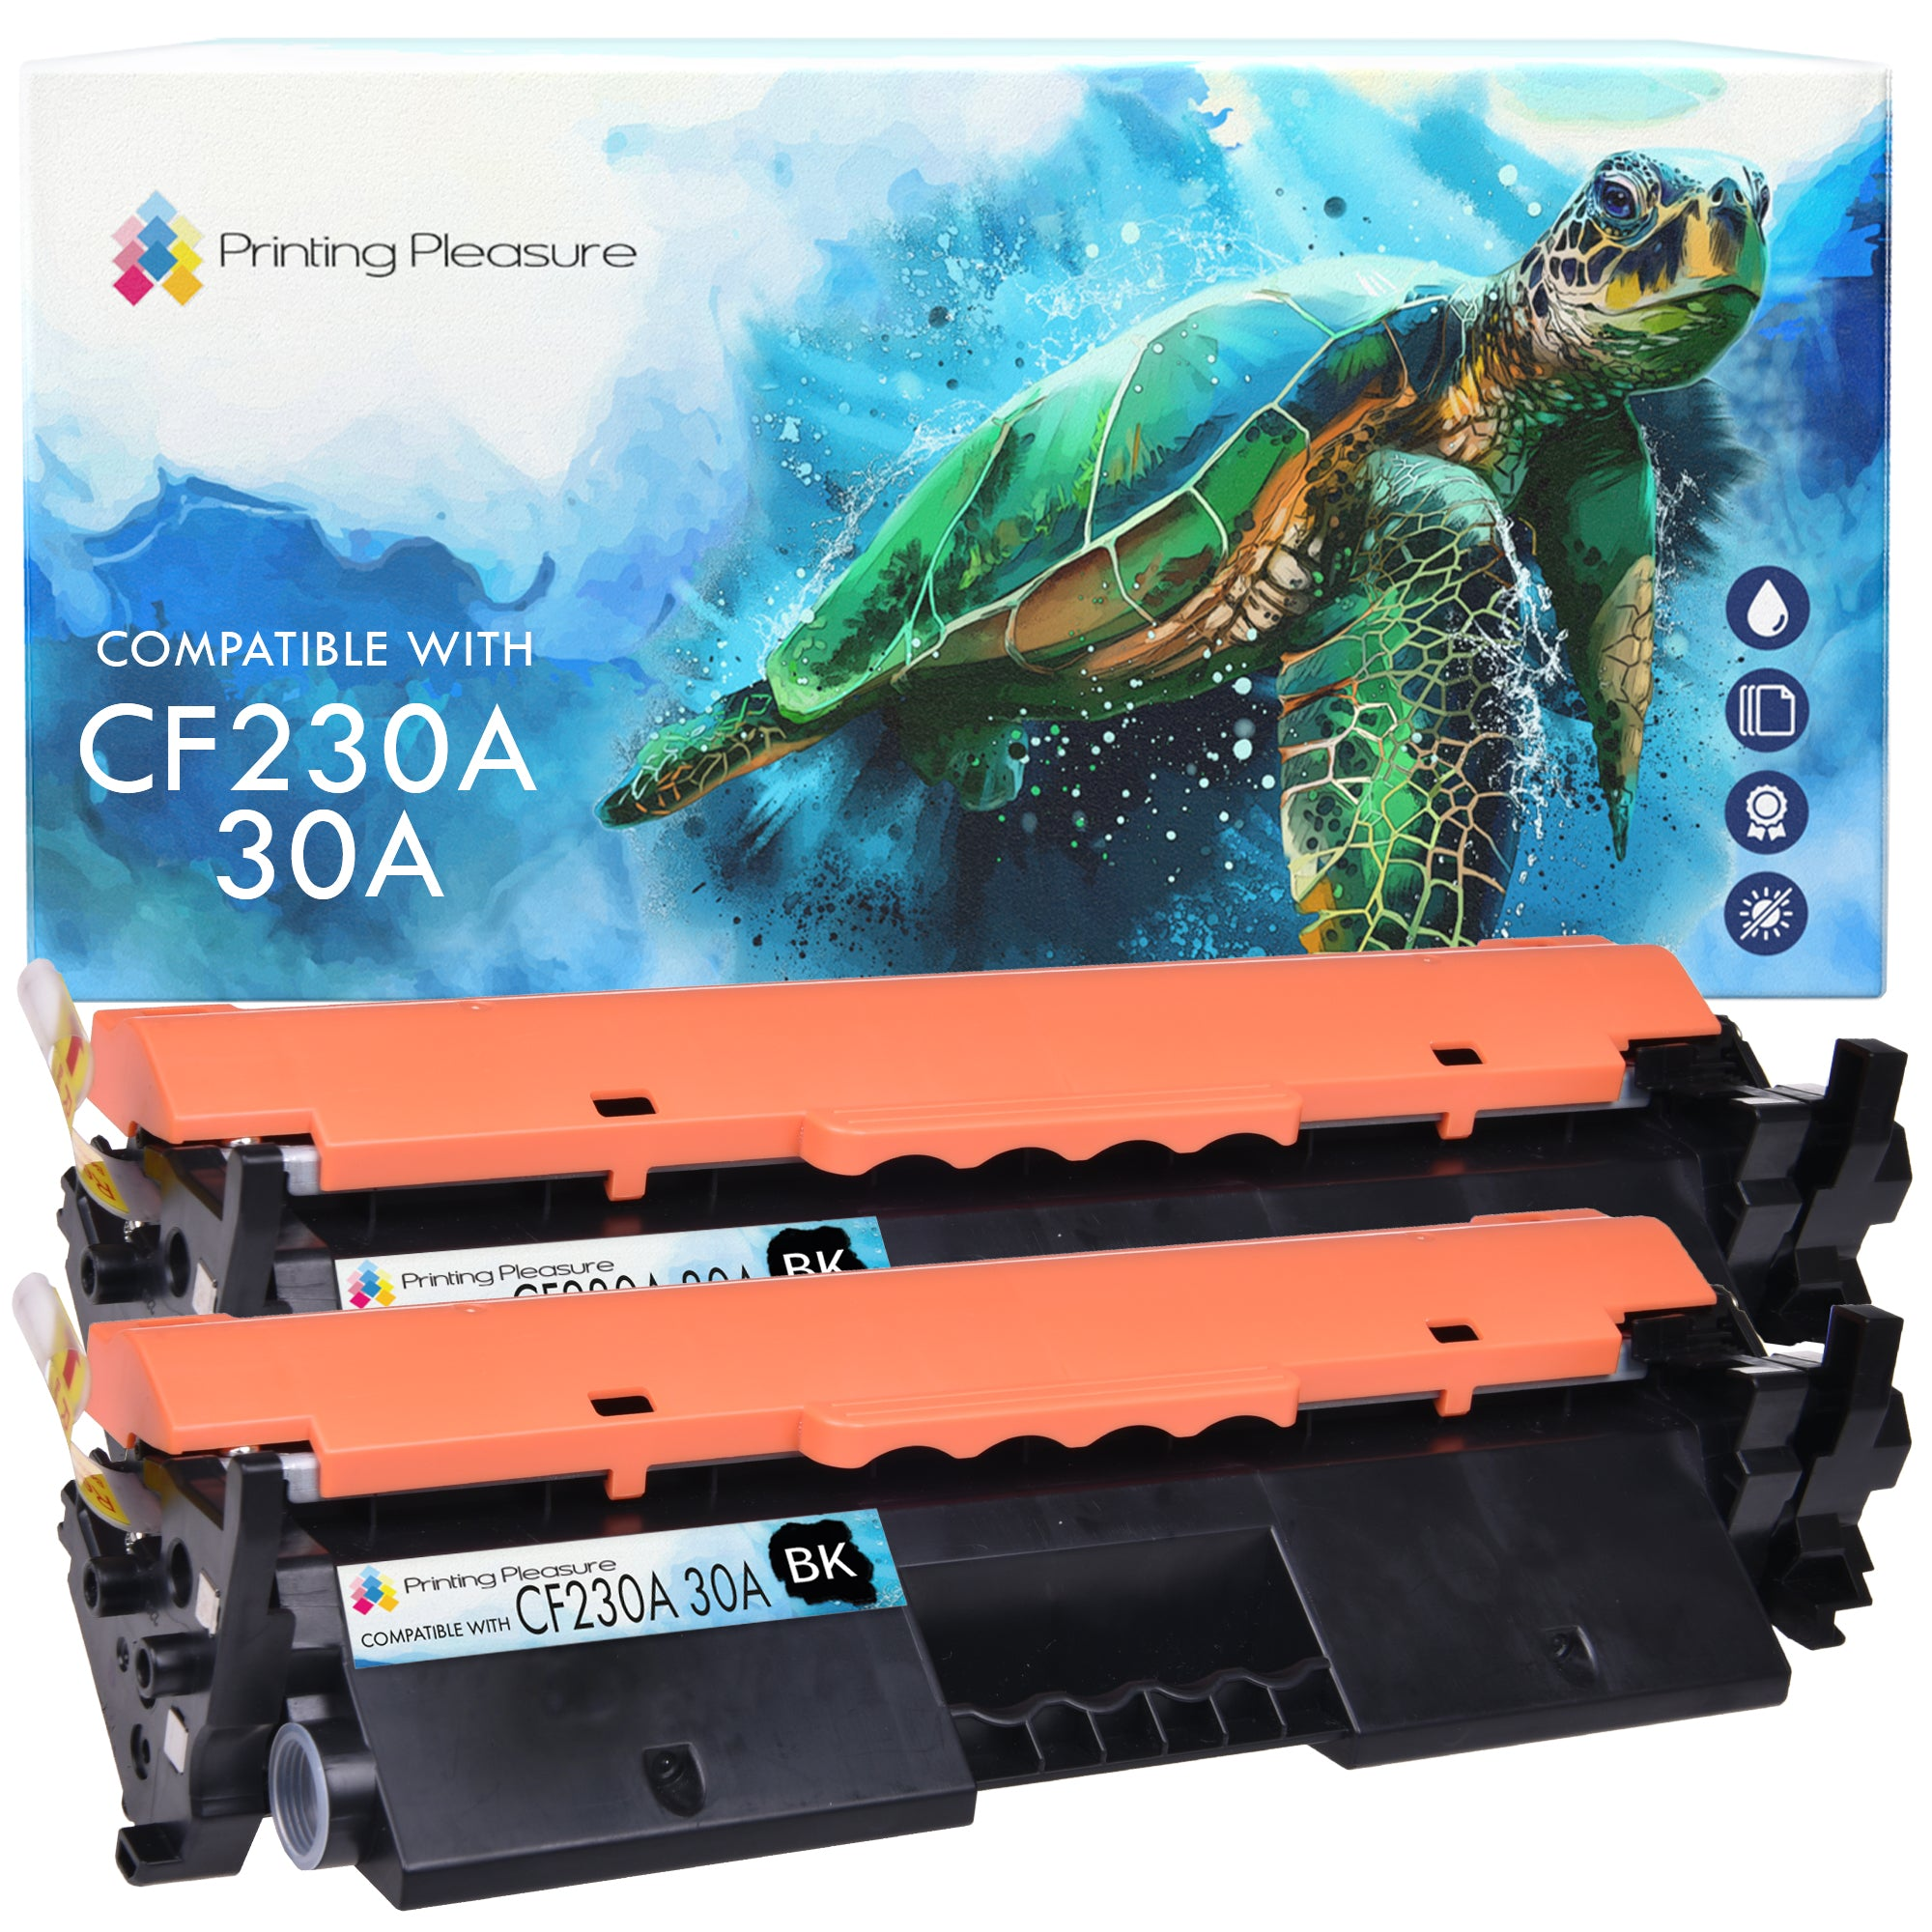 Toner Cartridge comaptible with HP 230a